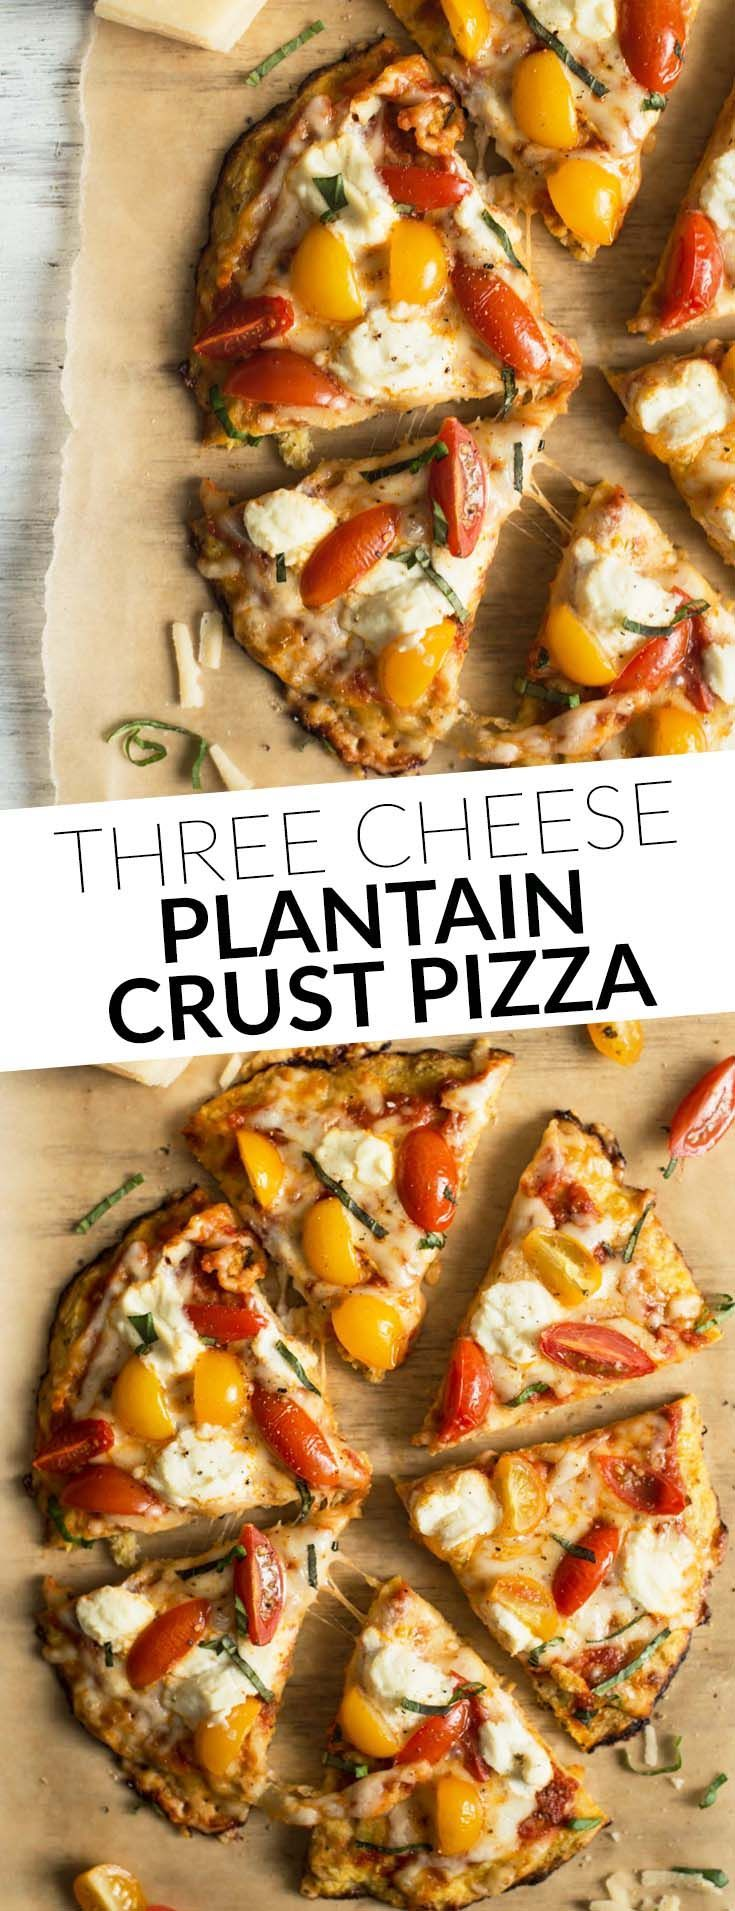 Three Cheese Plantain Crust Pizza - easy, gluten-free pizza ready in 30 minutes! by /healthynibs/